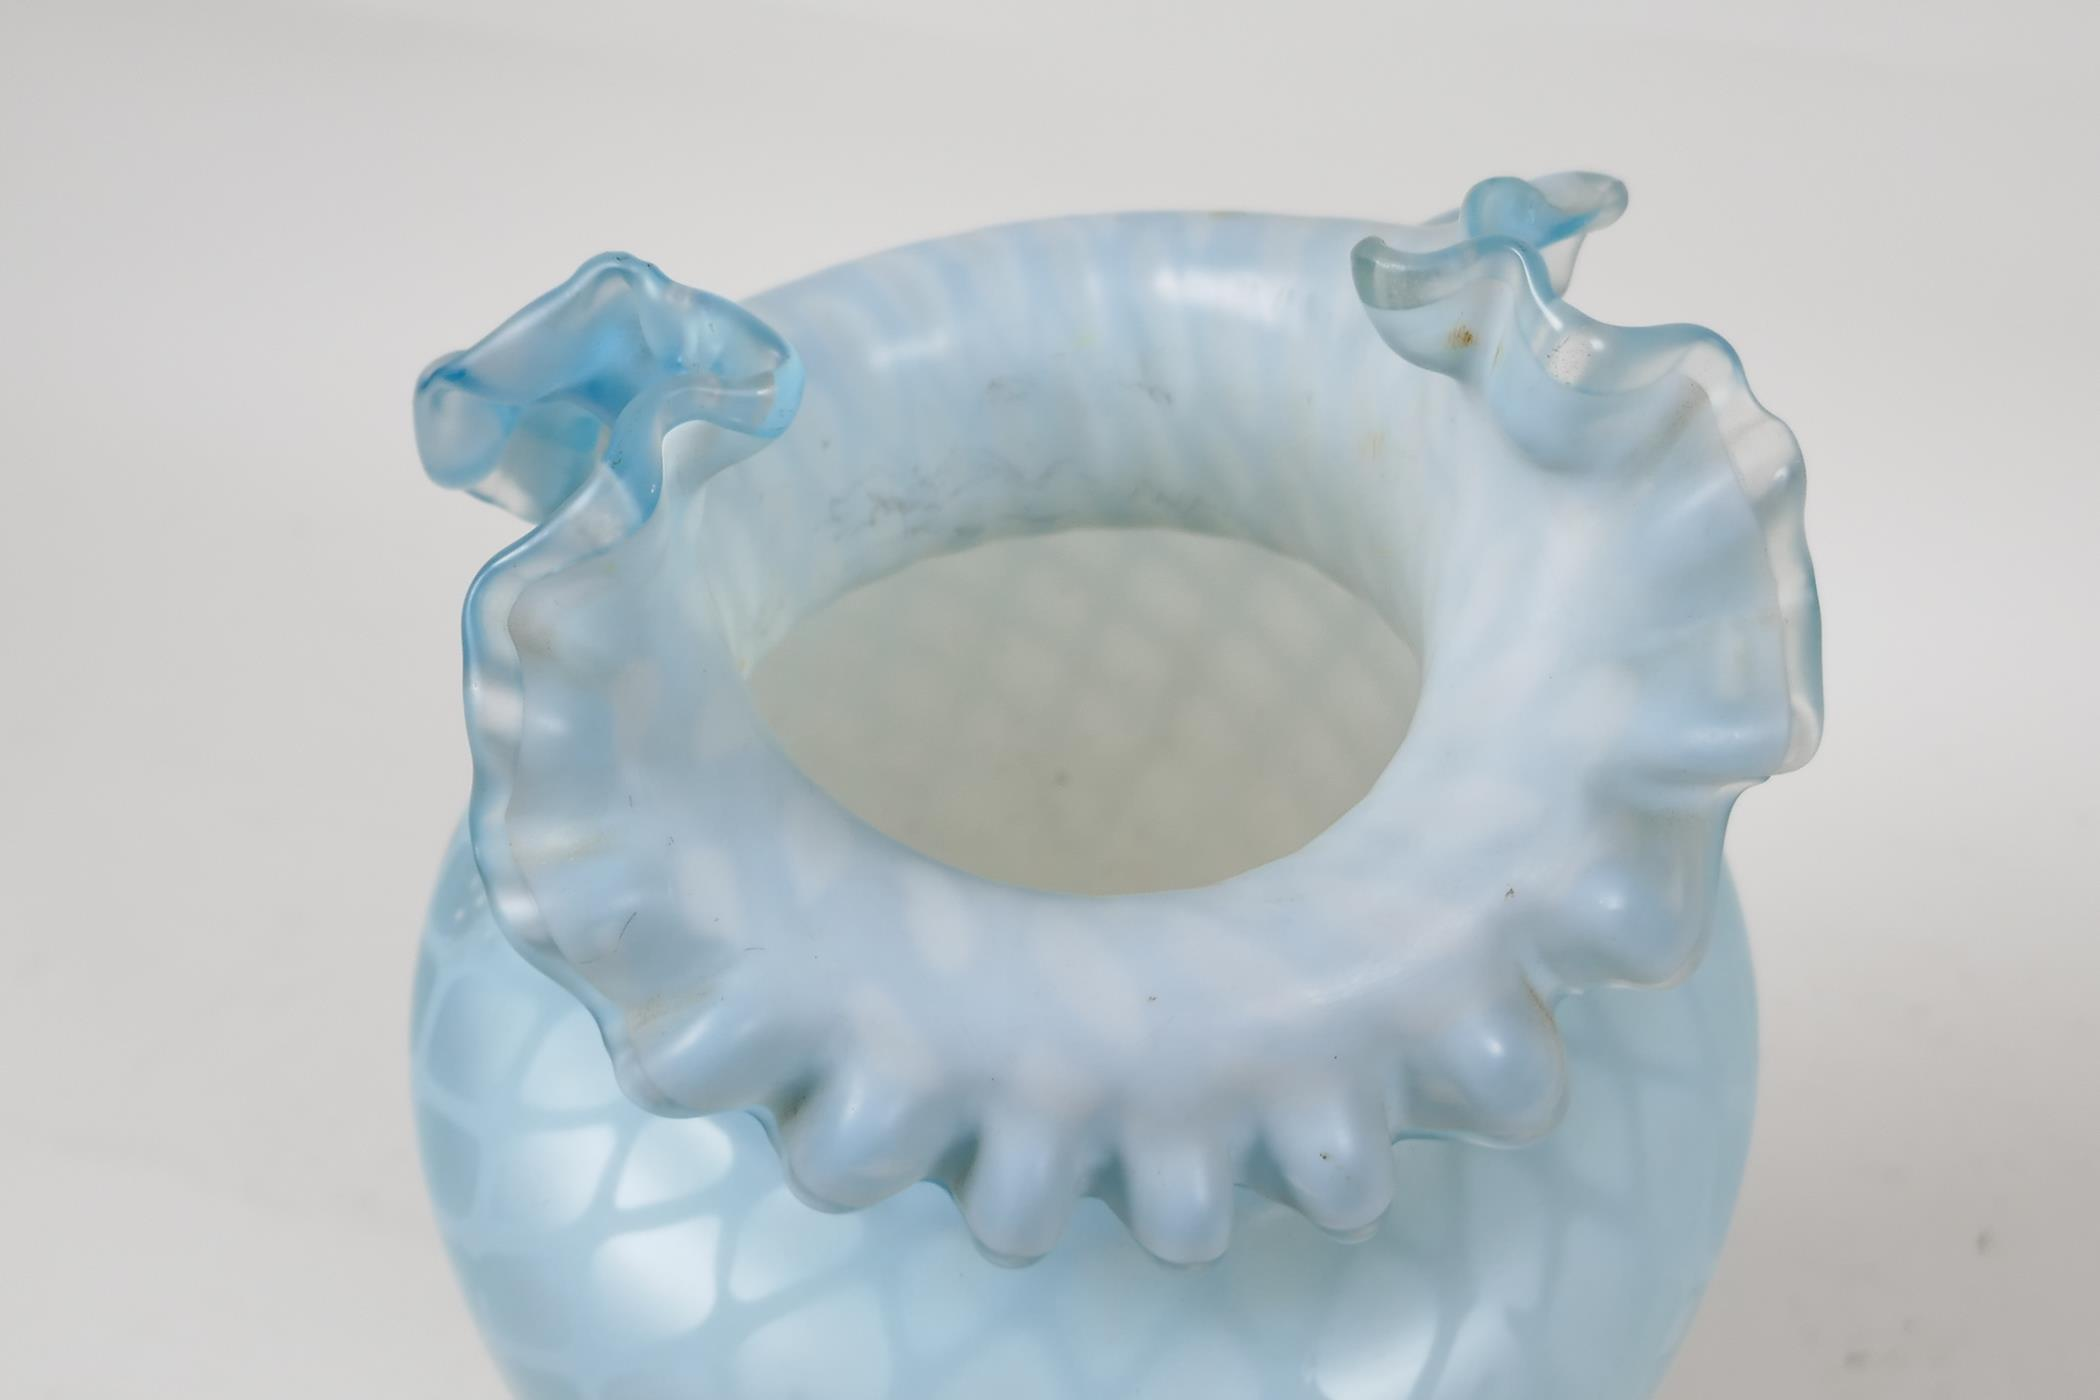 """A satin glass vase with lattice design, 11"""" high - Image 4 of 5"""